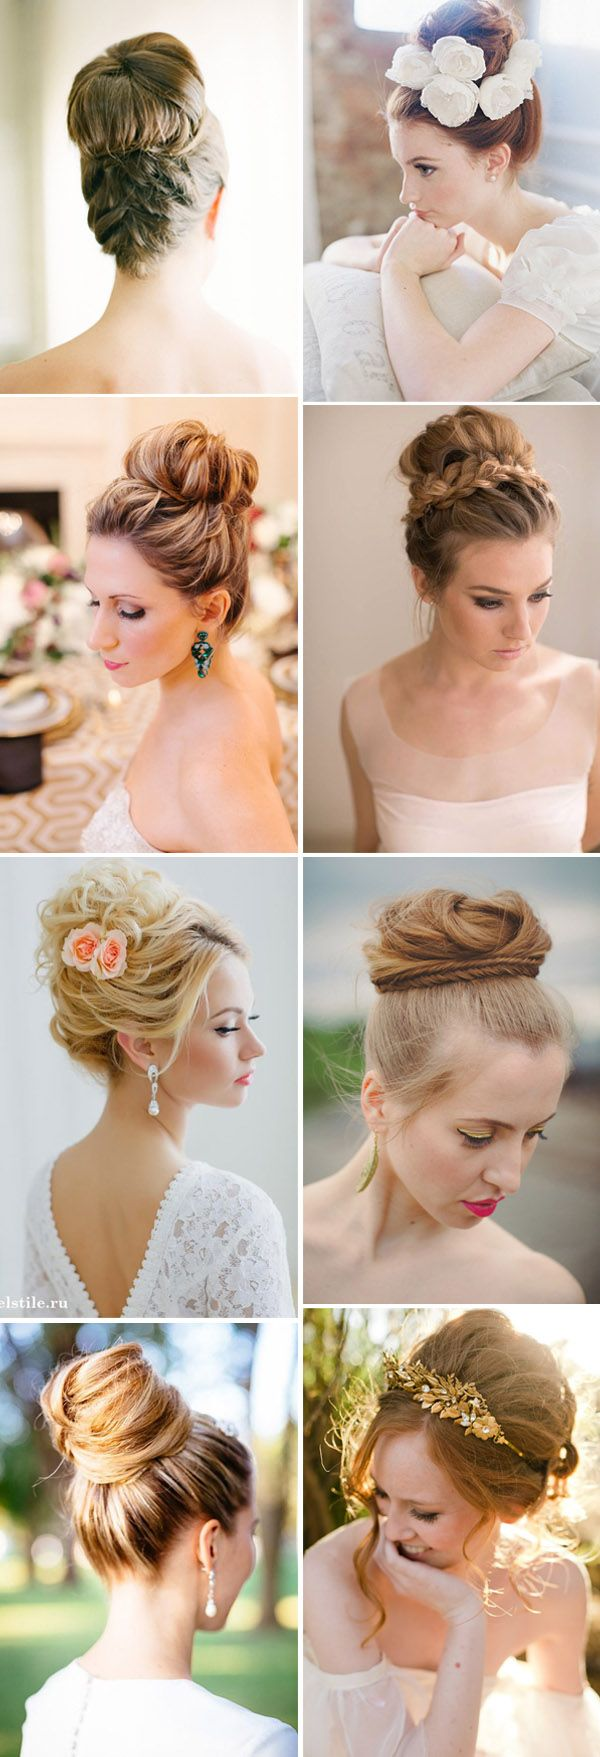 chic high updo wedding hairstyle ideas for brides high updo